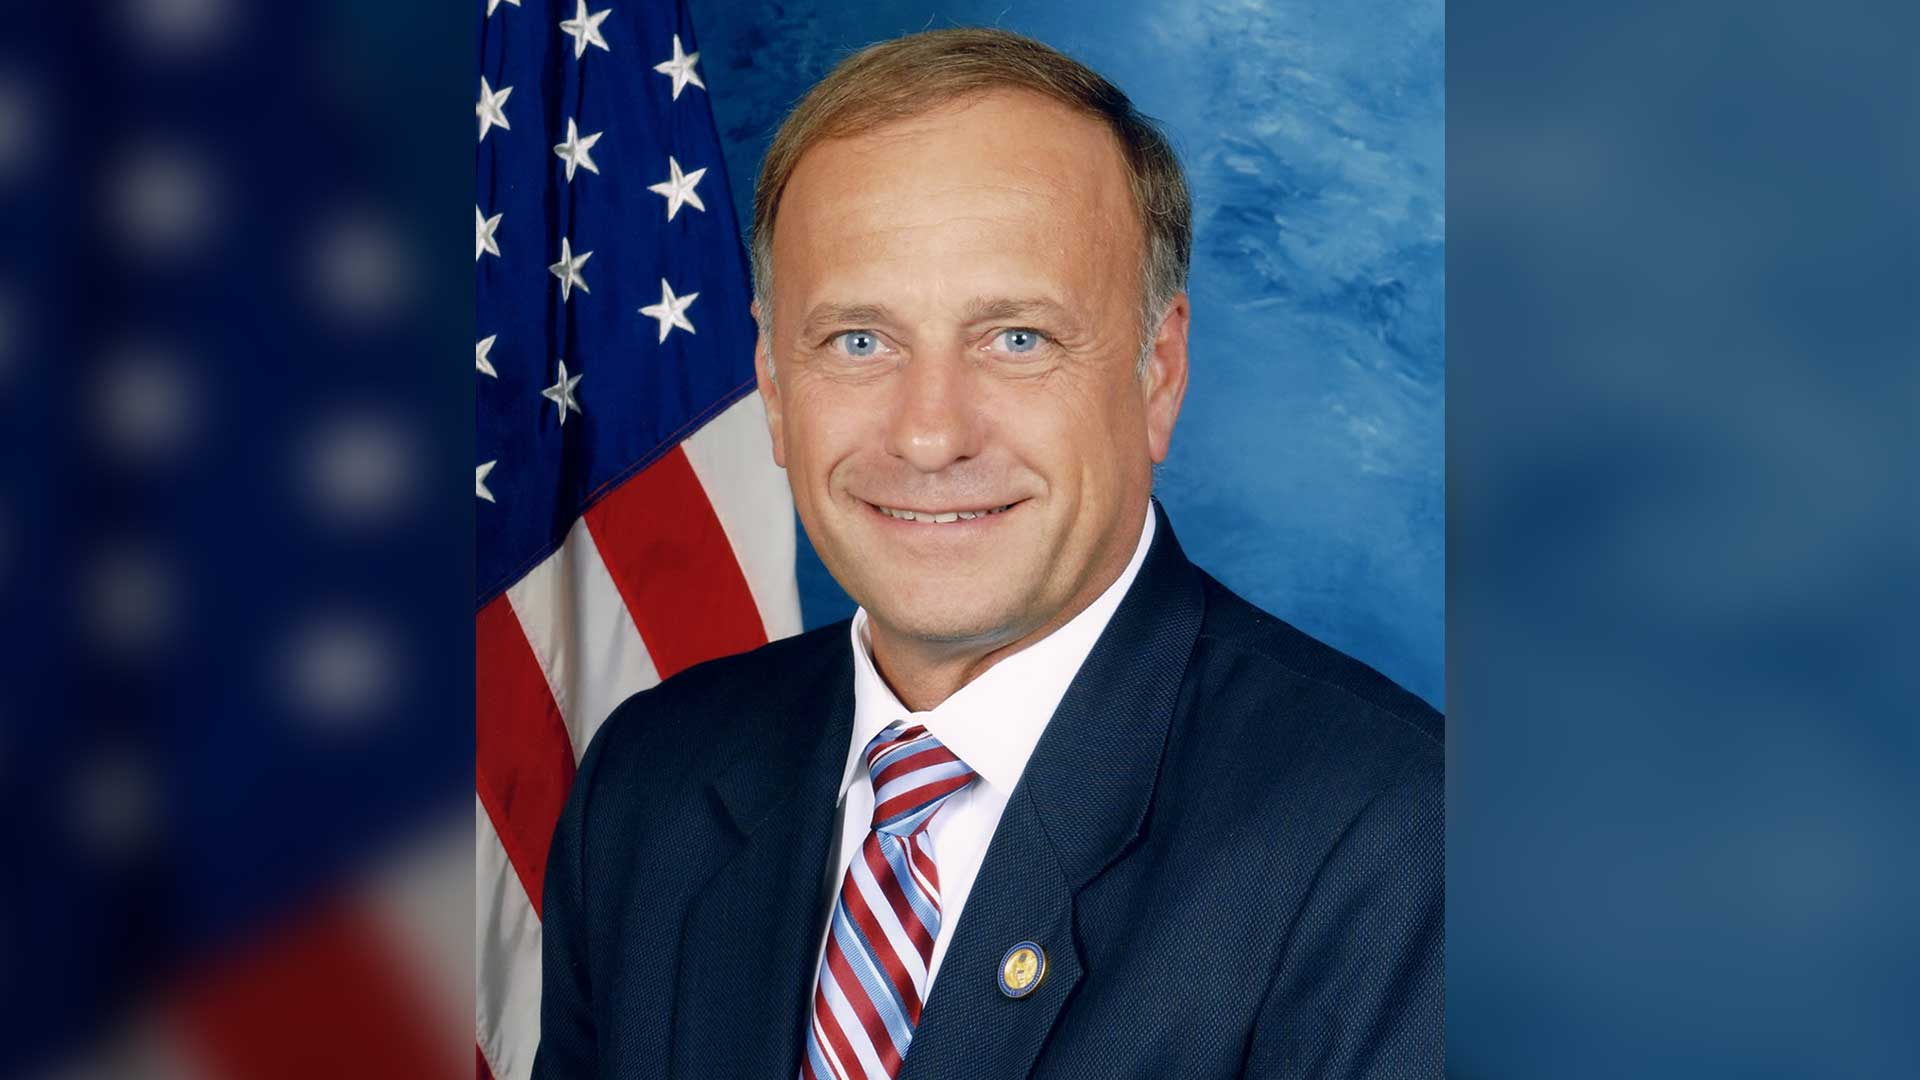 Steve-King-Wondering-How-He-Can-Be-Racist-When-You-Are-All-The-Racists.jpg